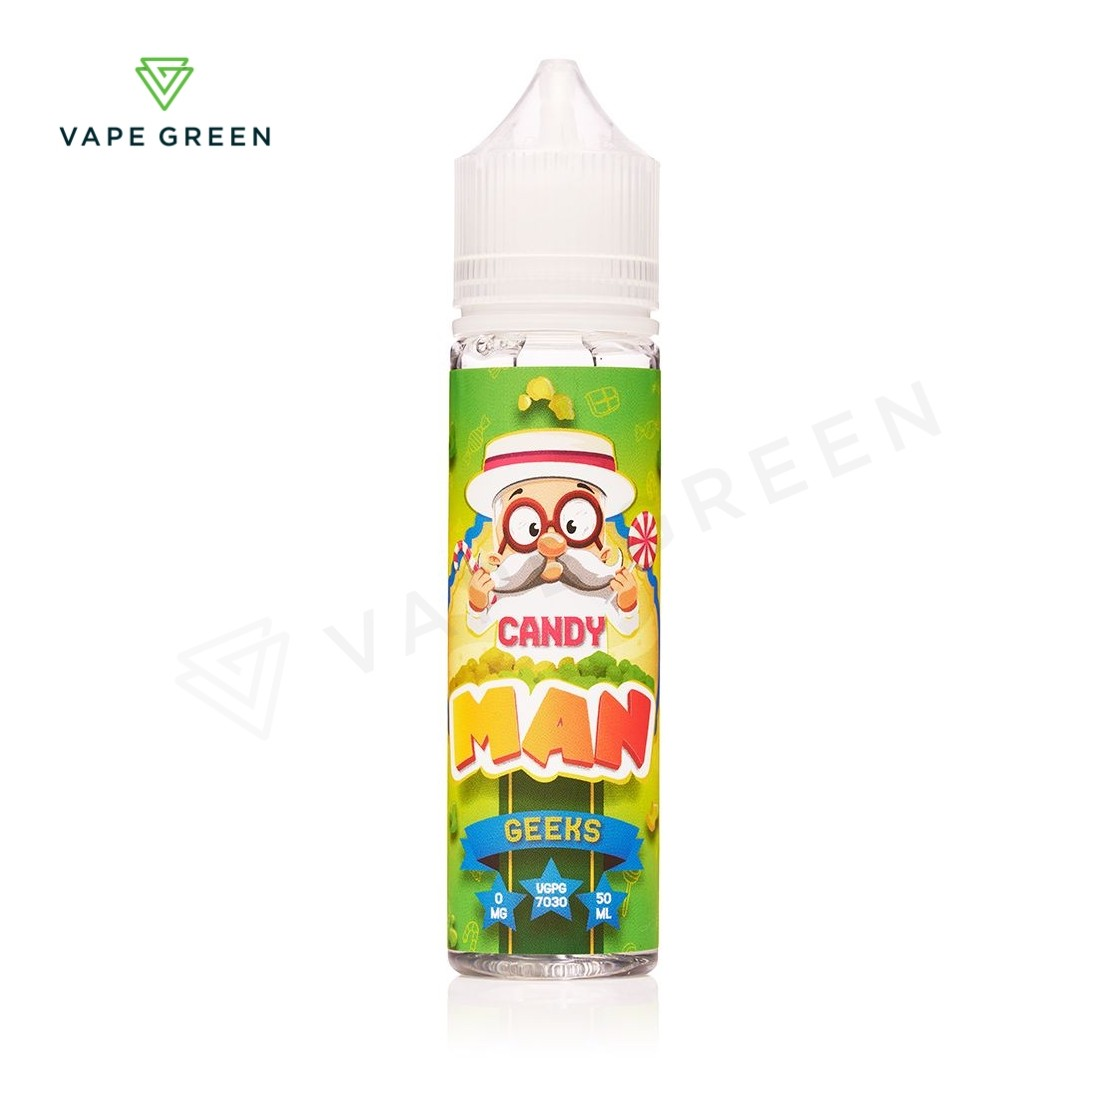 Geeks E-Liquid by Candy Man 50ml